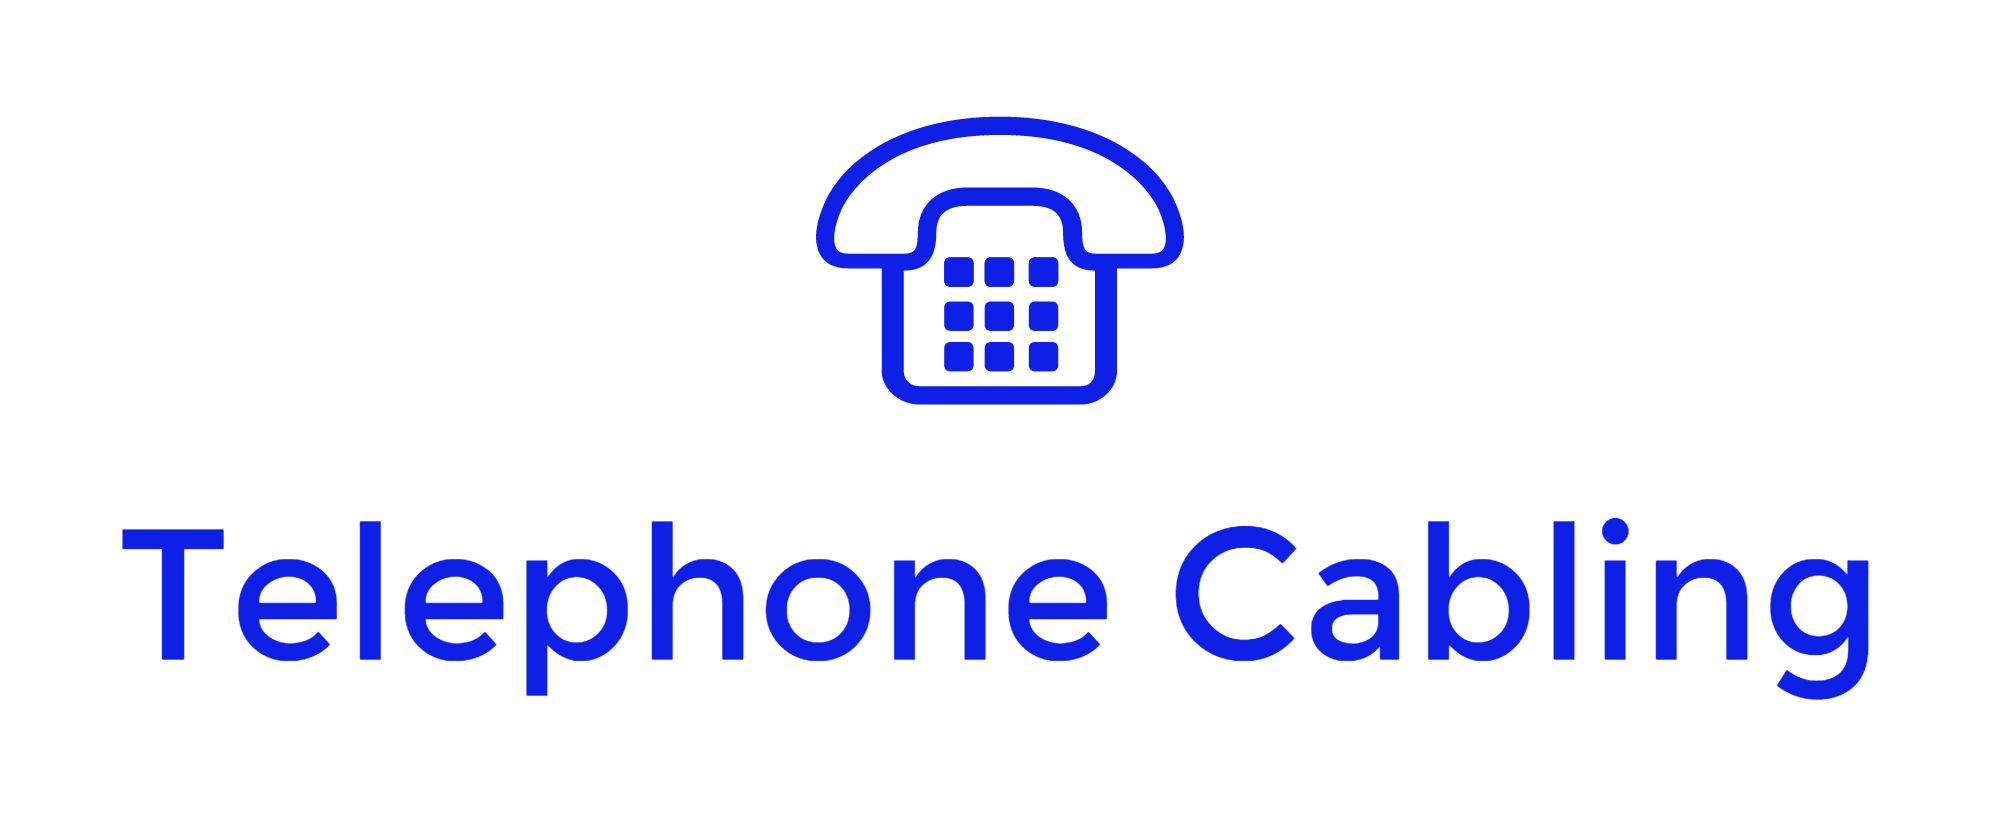 Telephone Cabling-logo.png